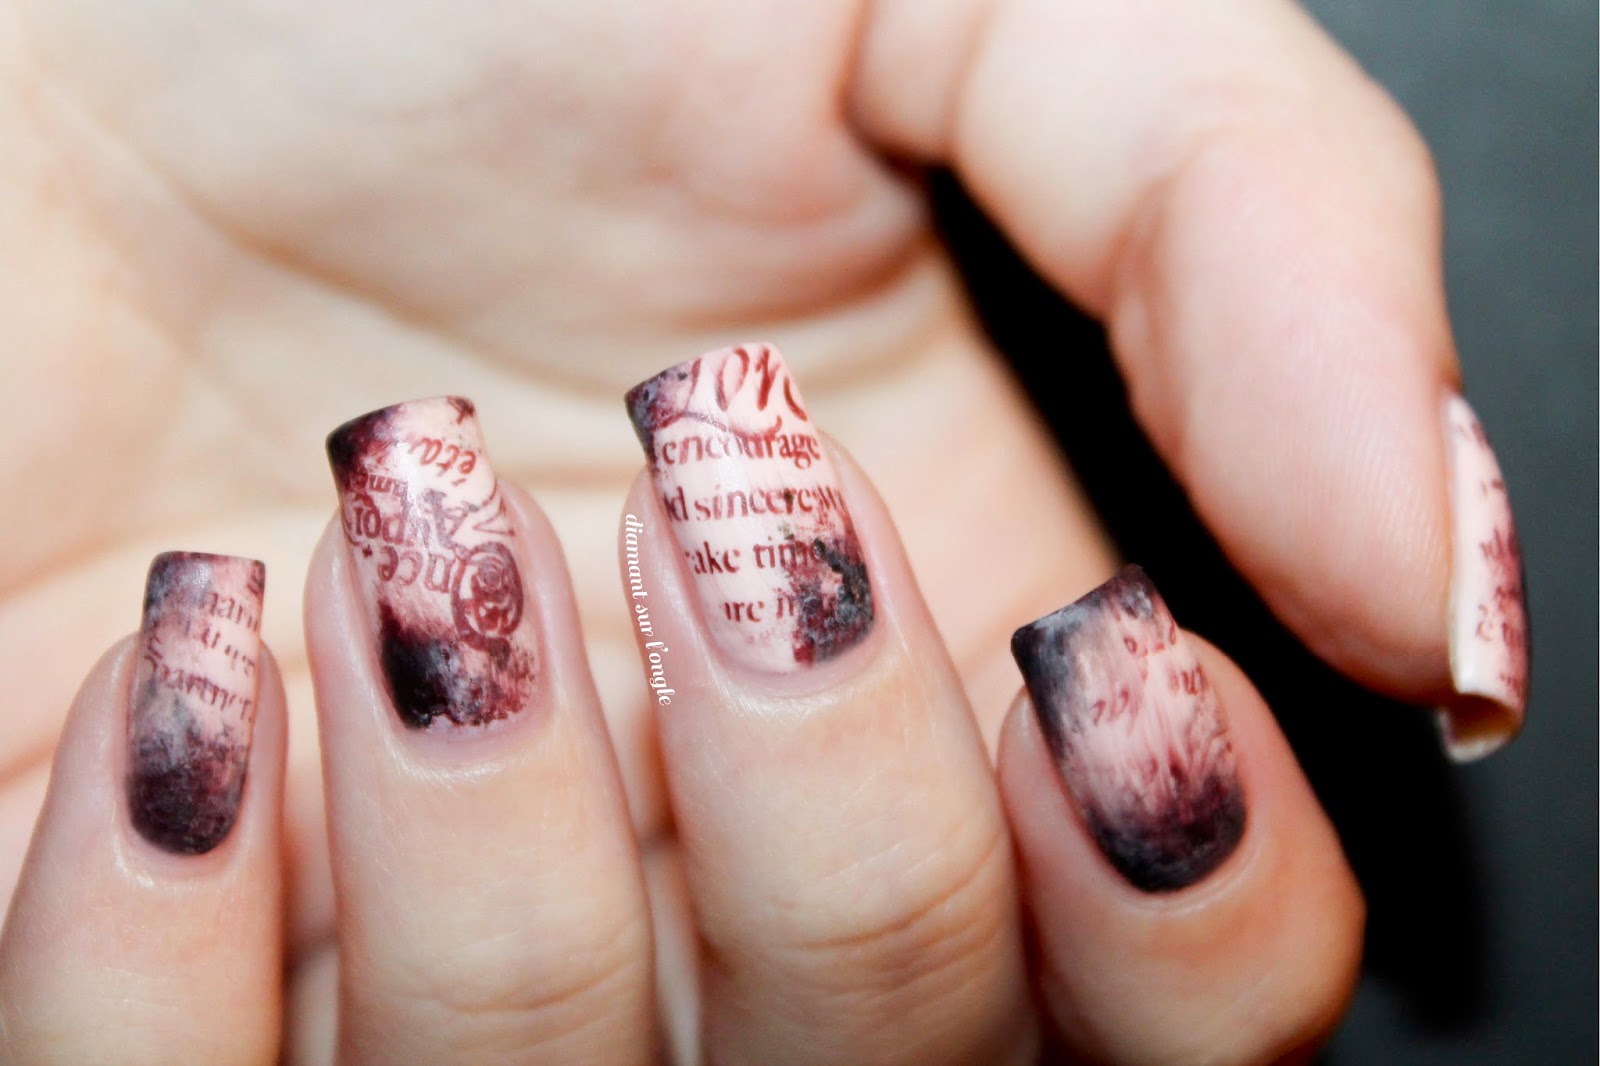 Old book page's nail art